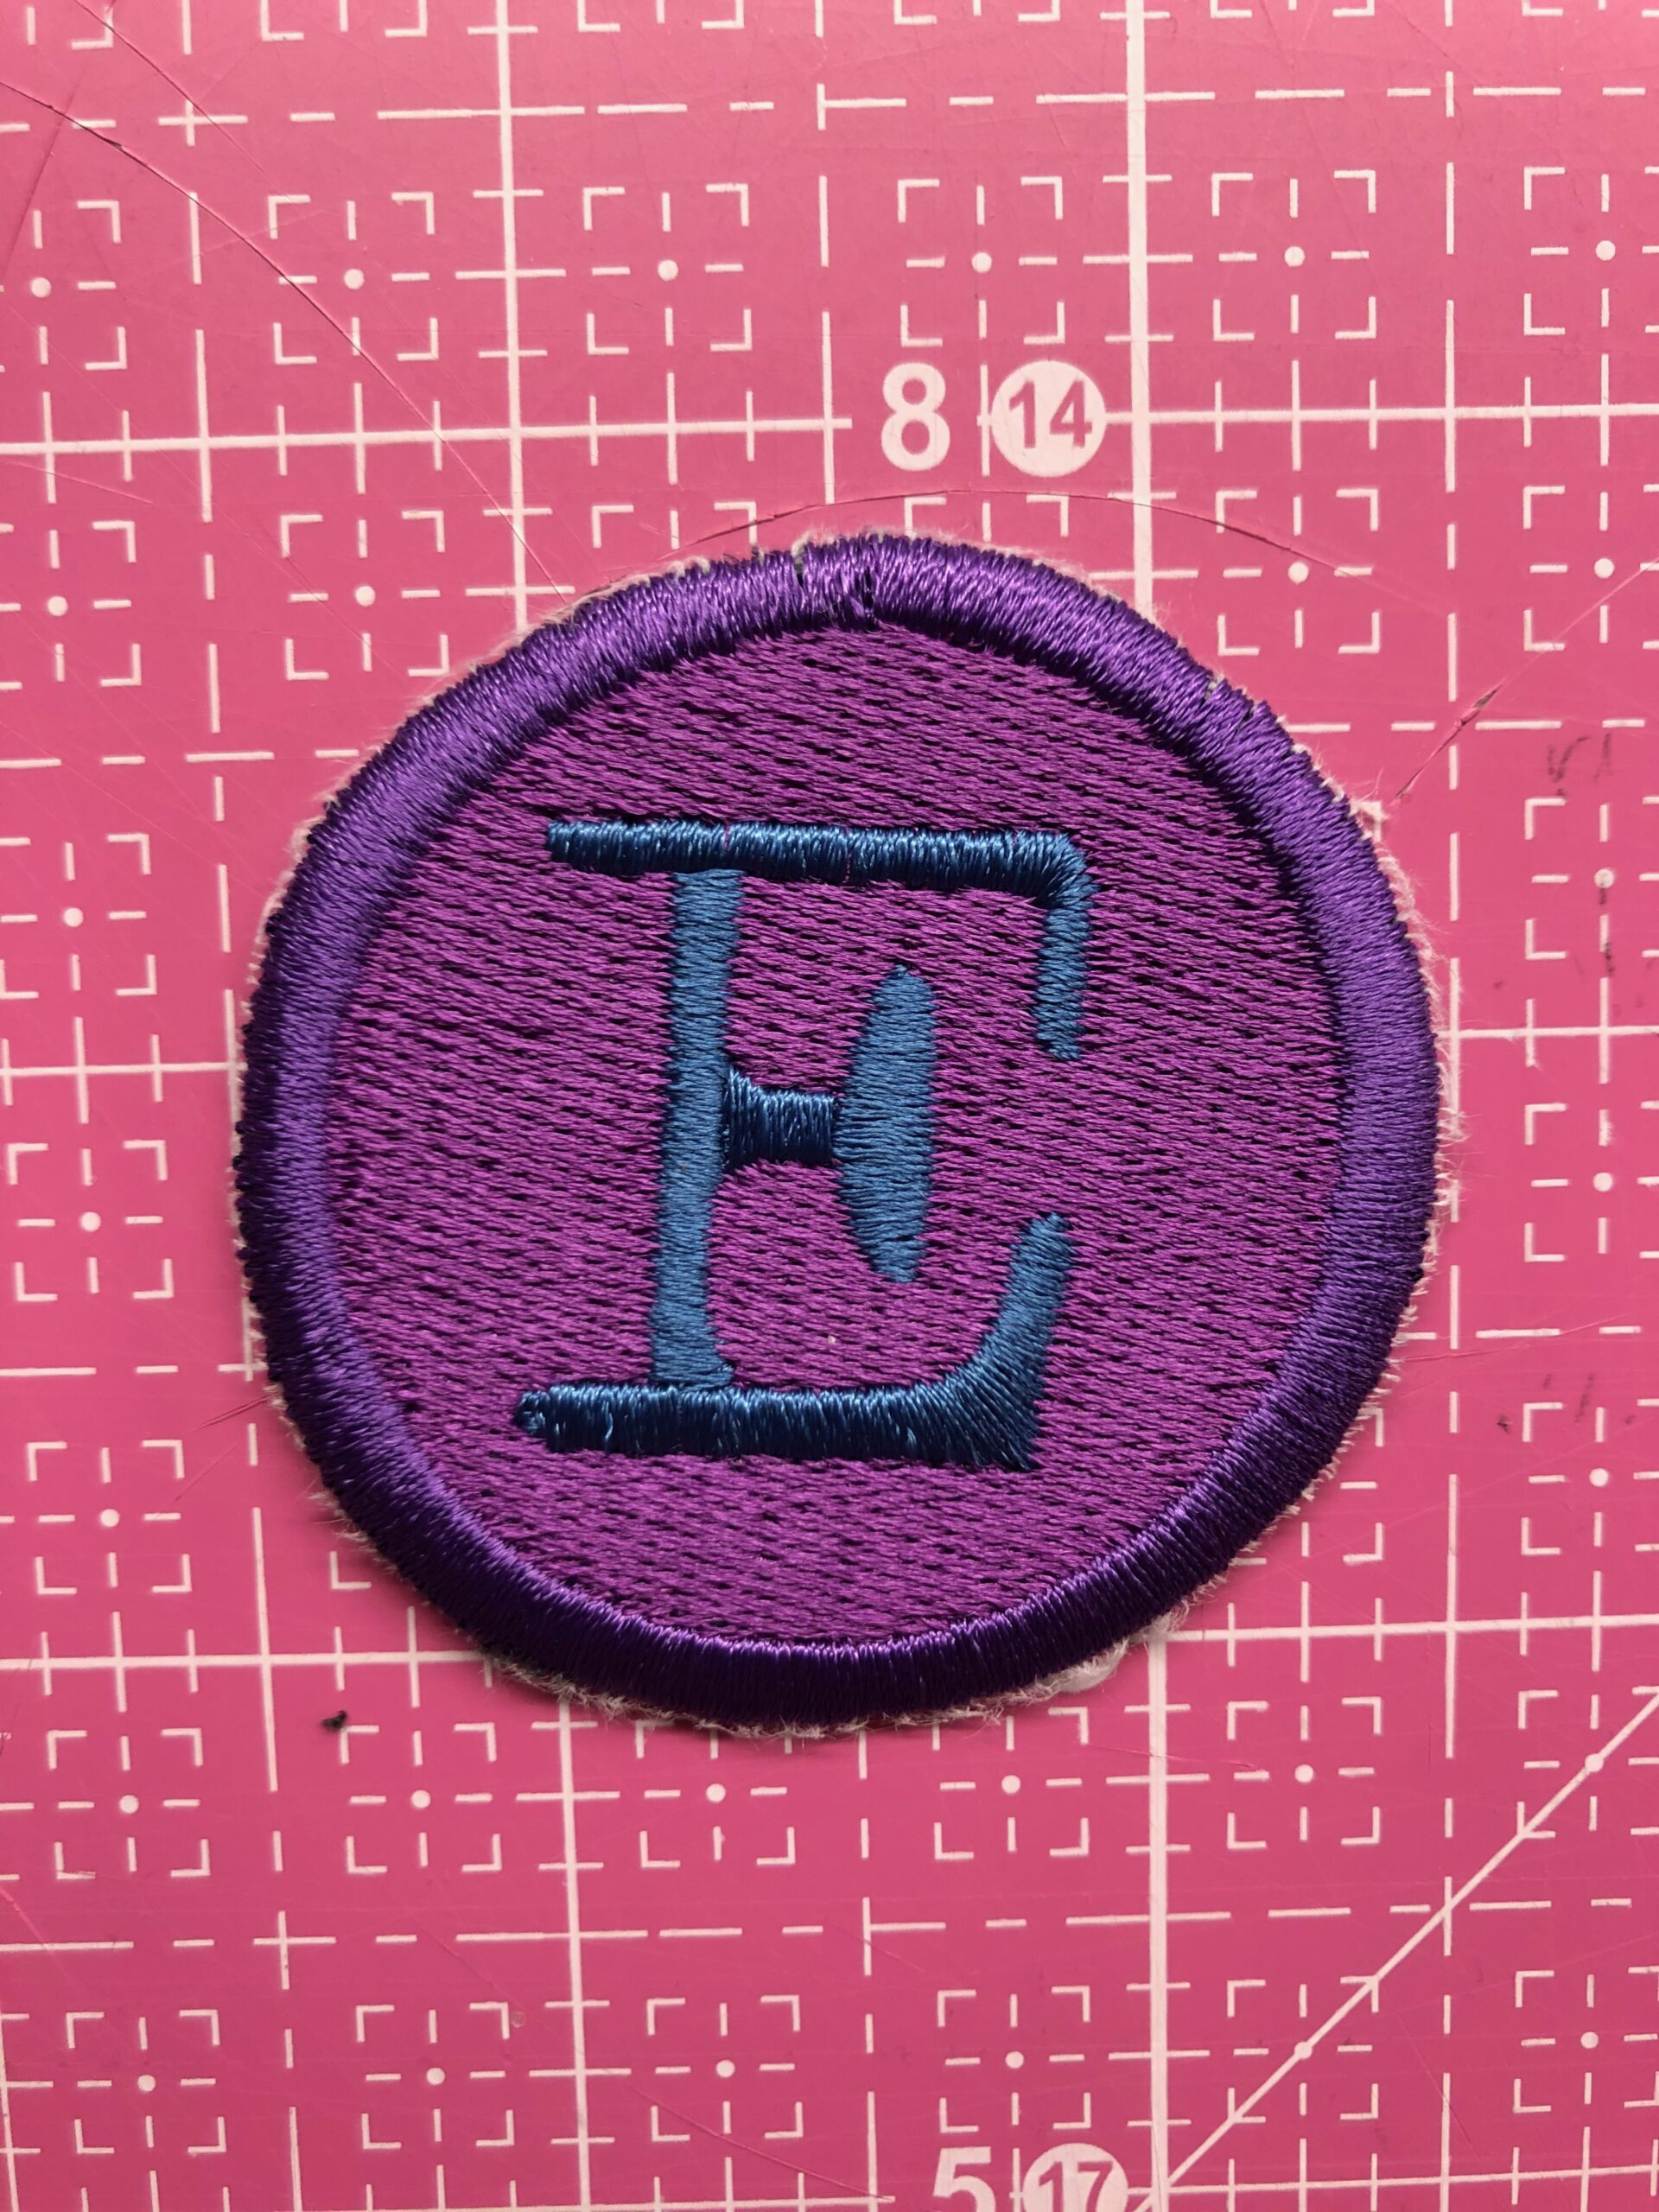 finished patch for how to sew faux leather